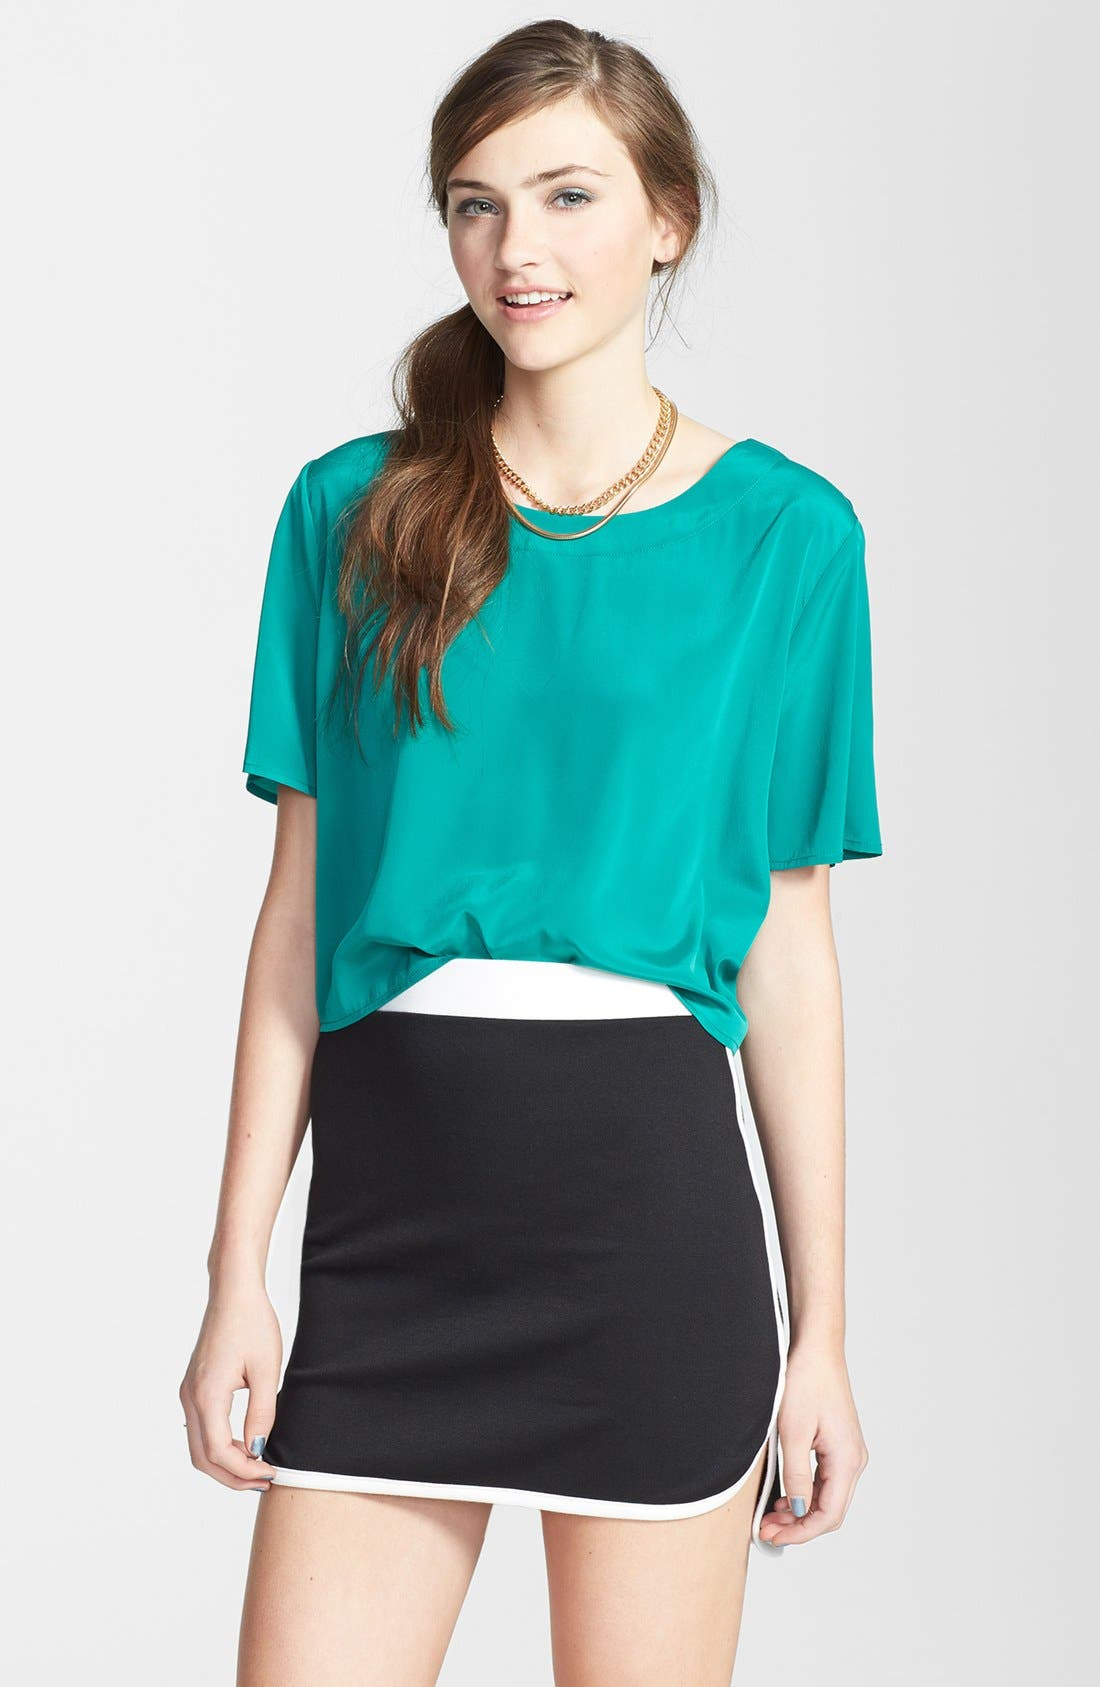 Alternate Image 1 Selected - Painted Threads Contrast Trim Miniskirt (Juniors) (Online Only)